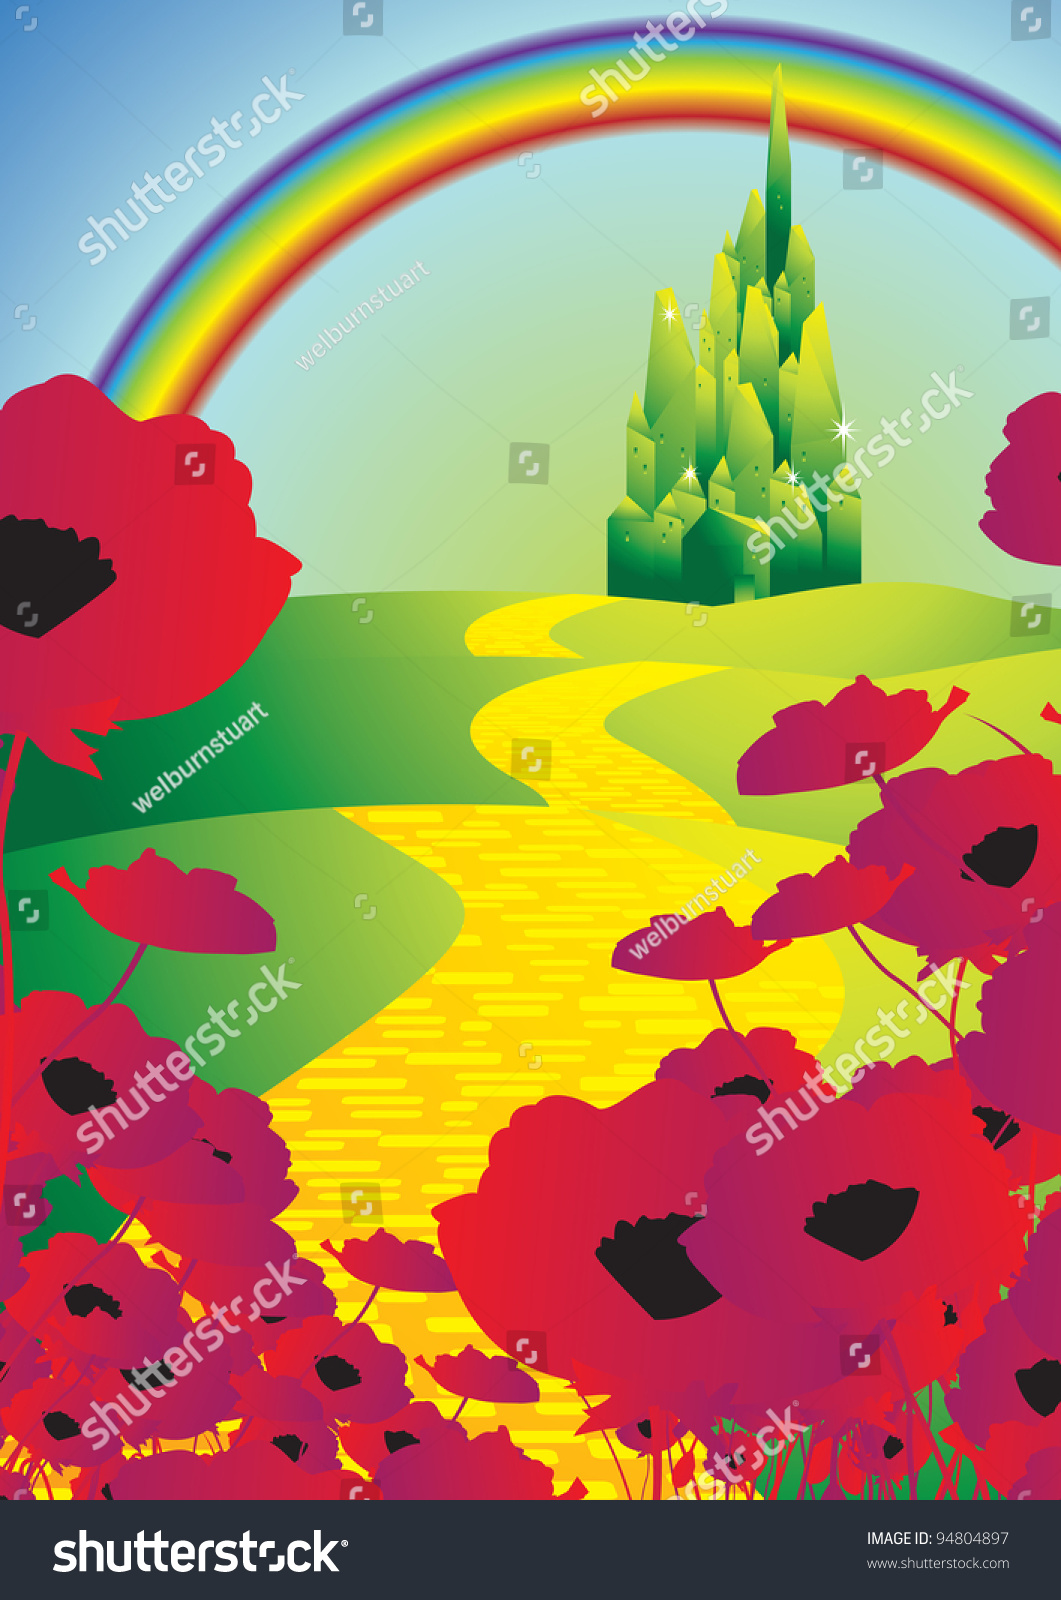 Emerald city and poppies and rainbow stock vector for Emerald city nickname